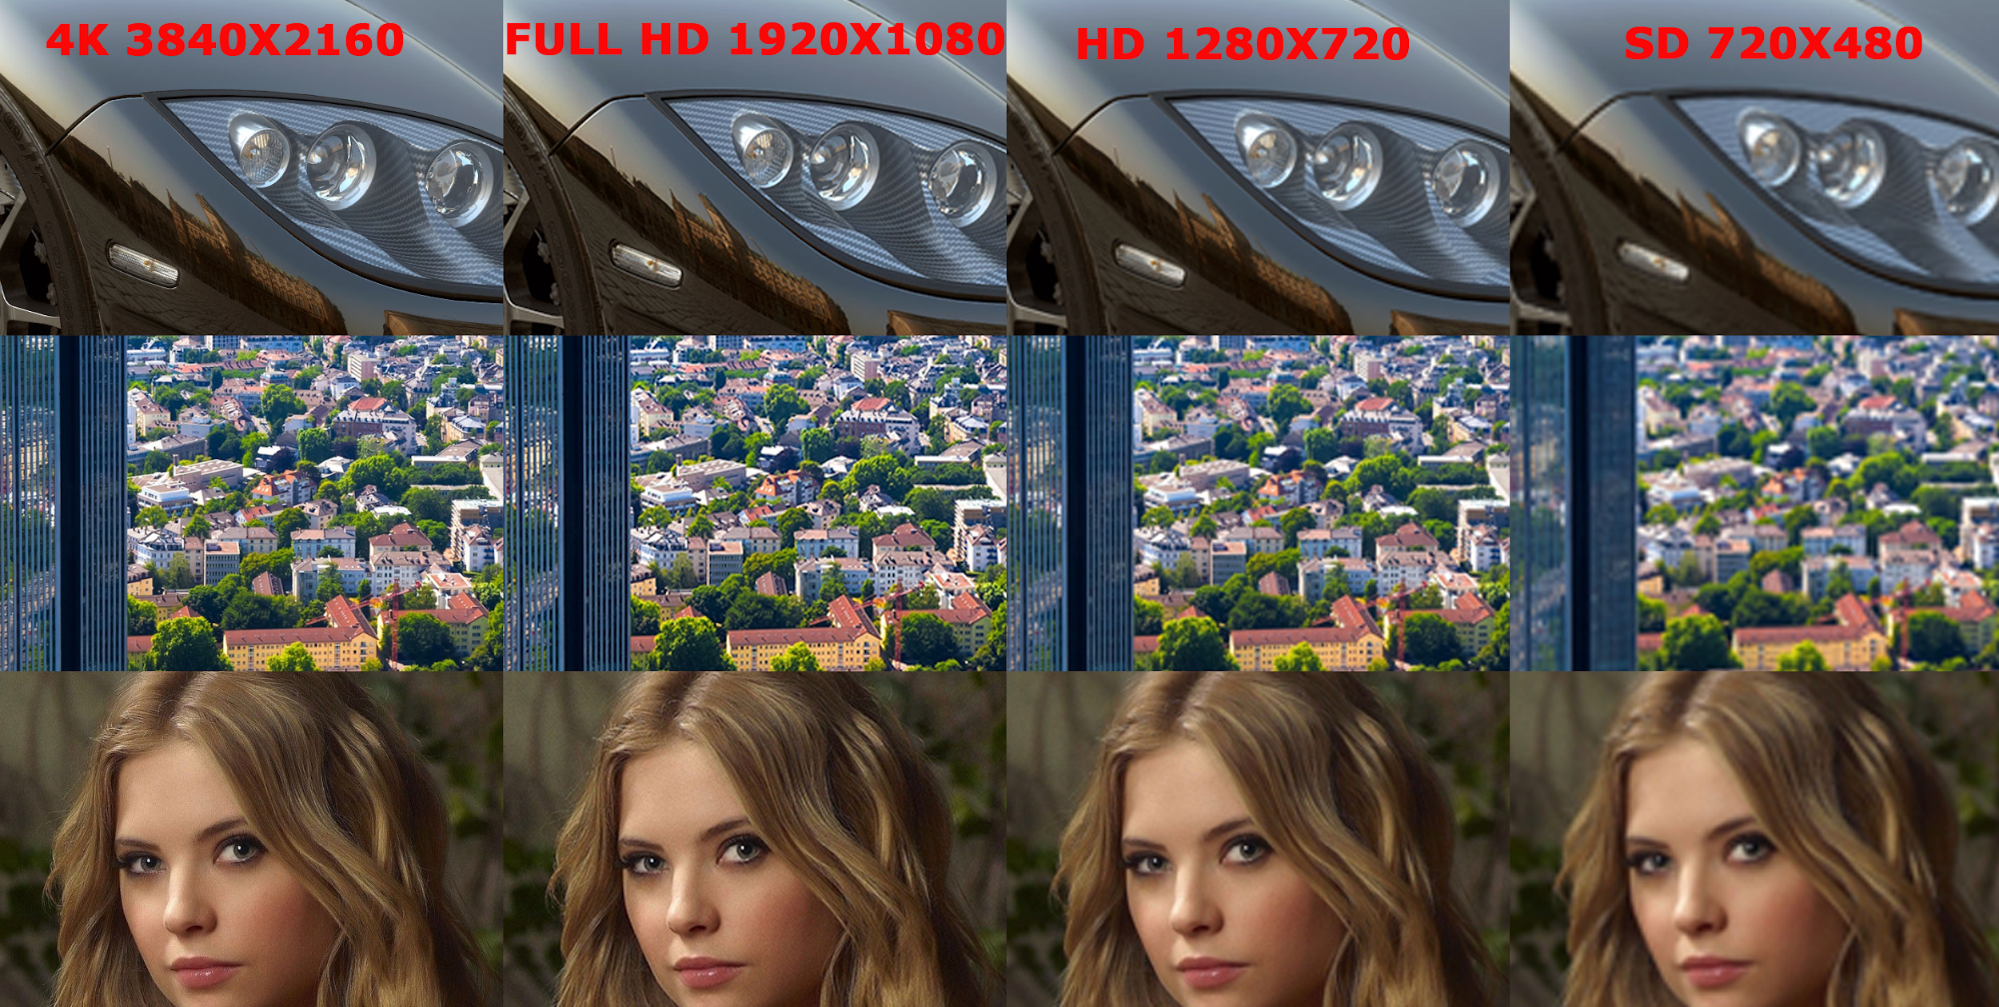 SD, HD, Full HD, 4К